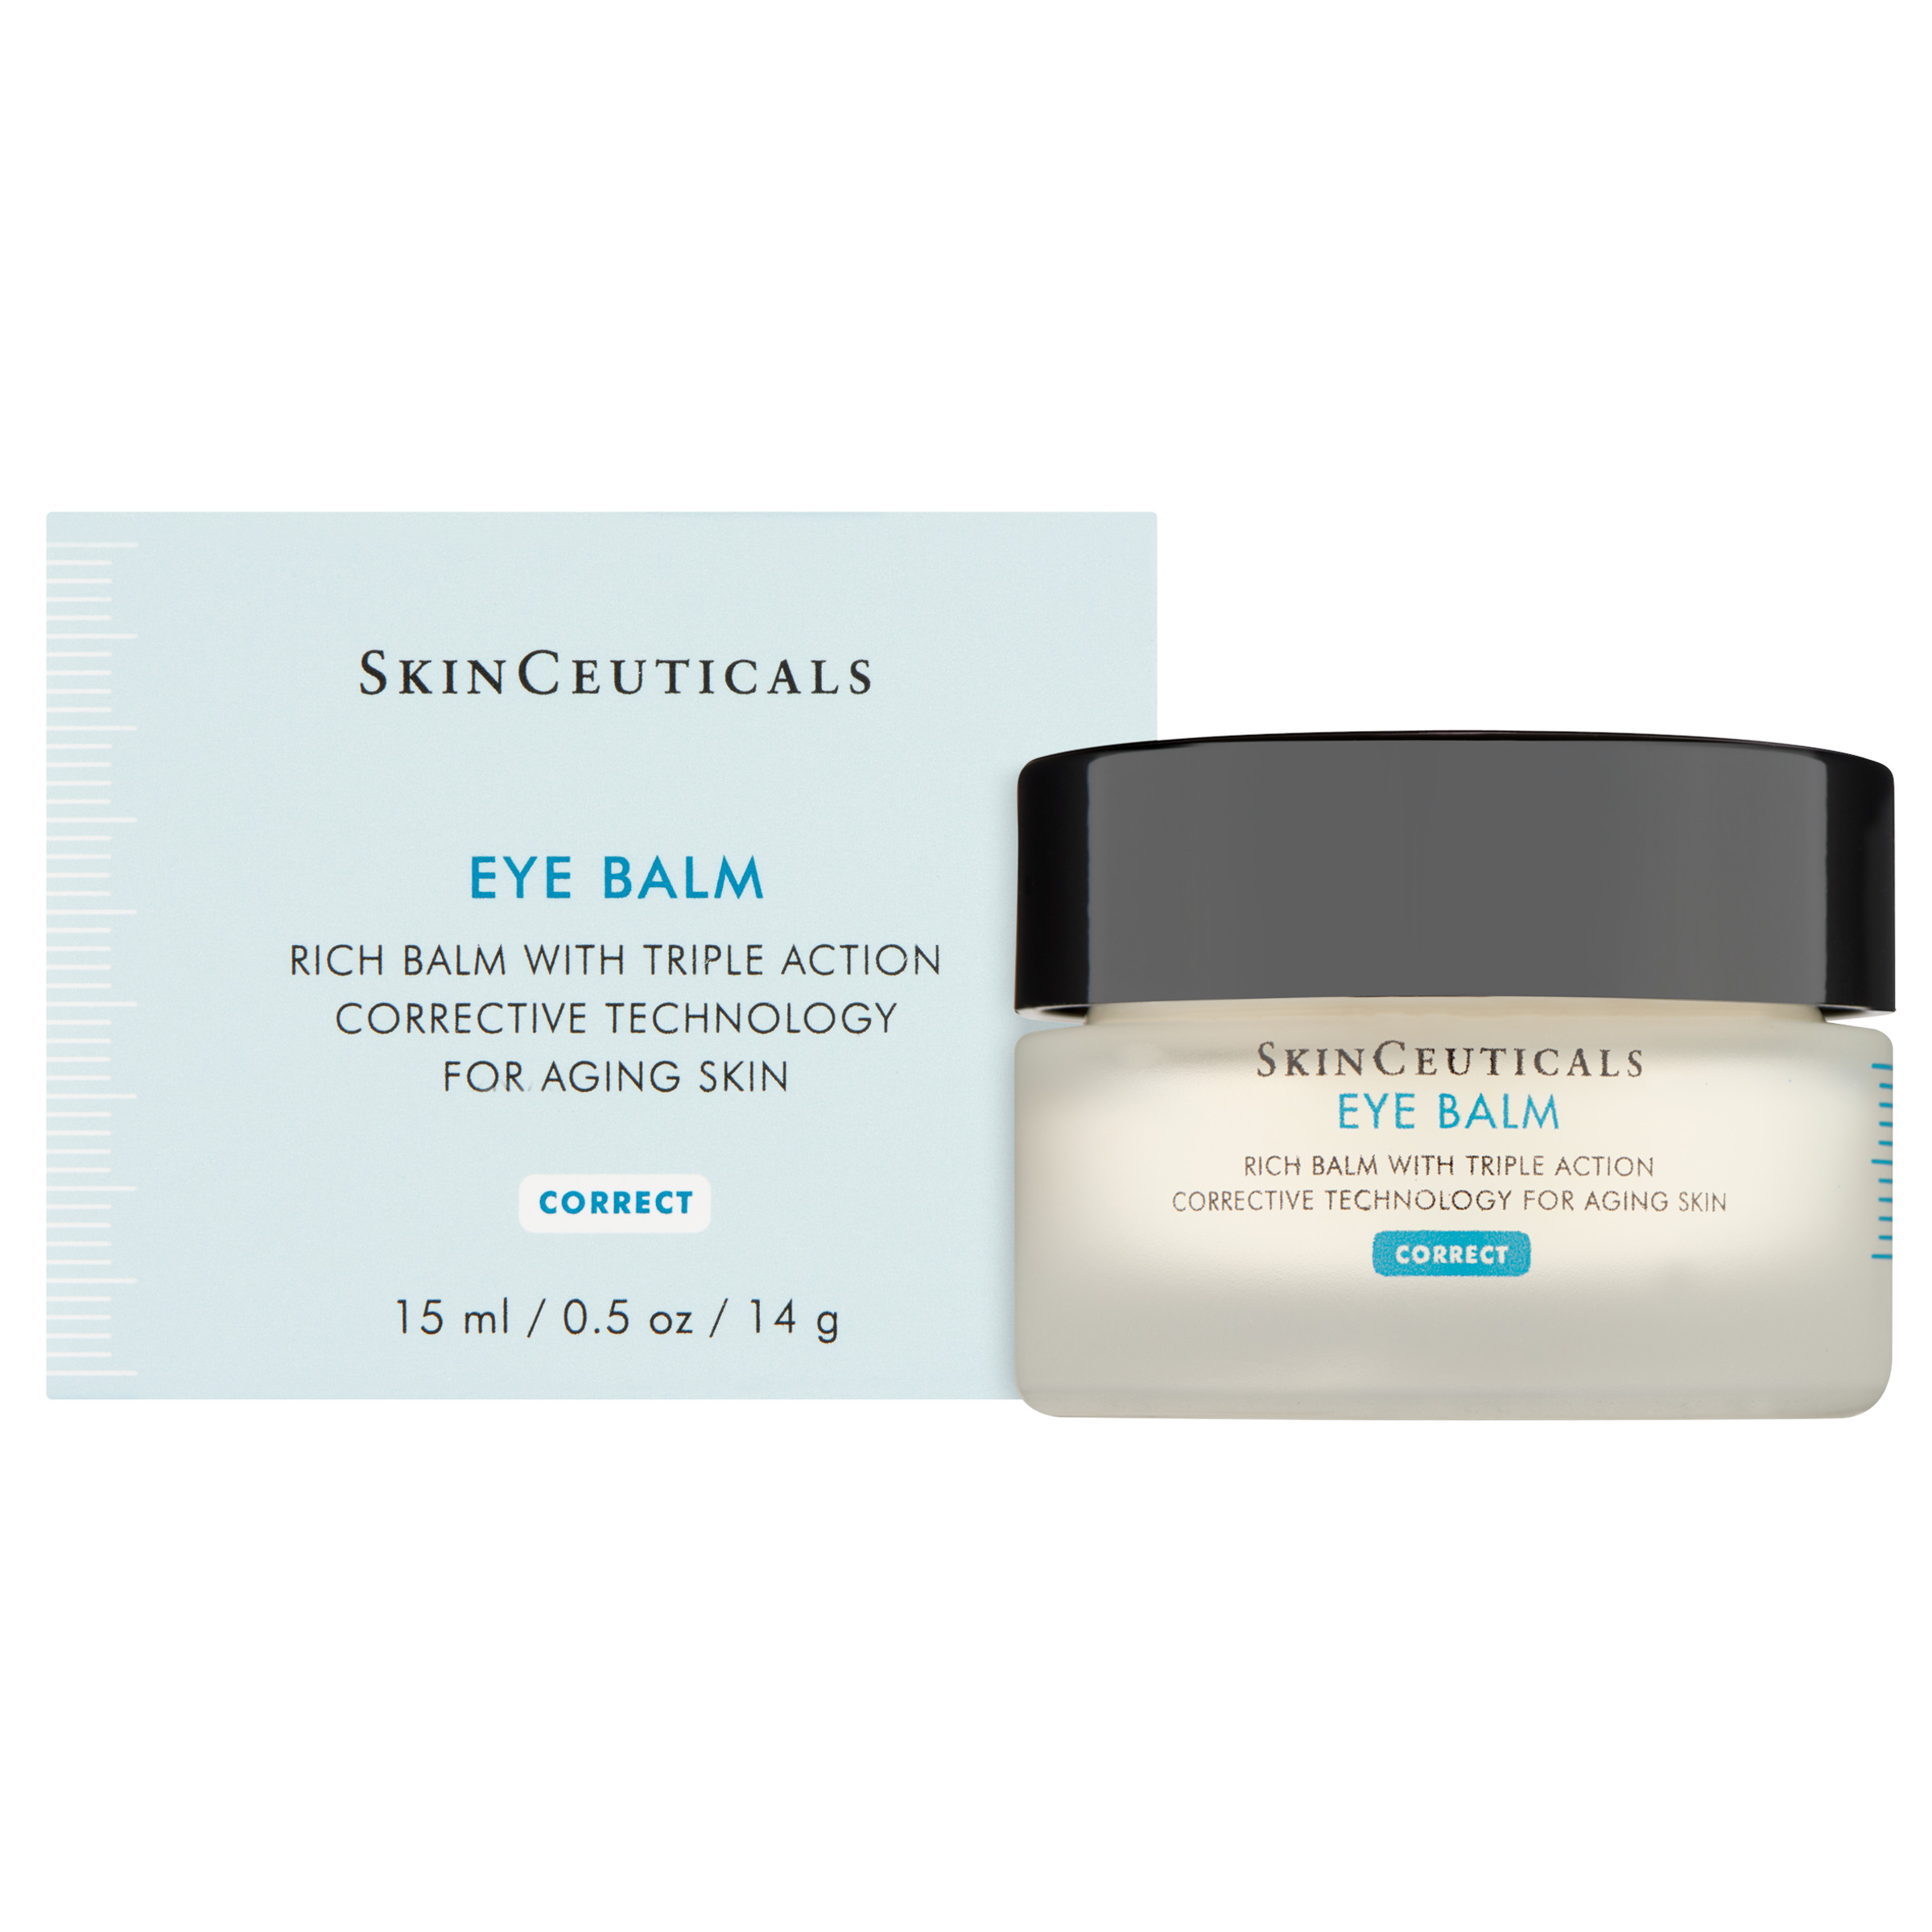 SkinCeuticals Eye Balm 14g